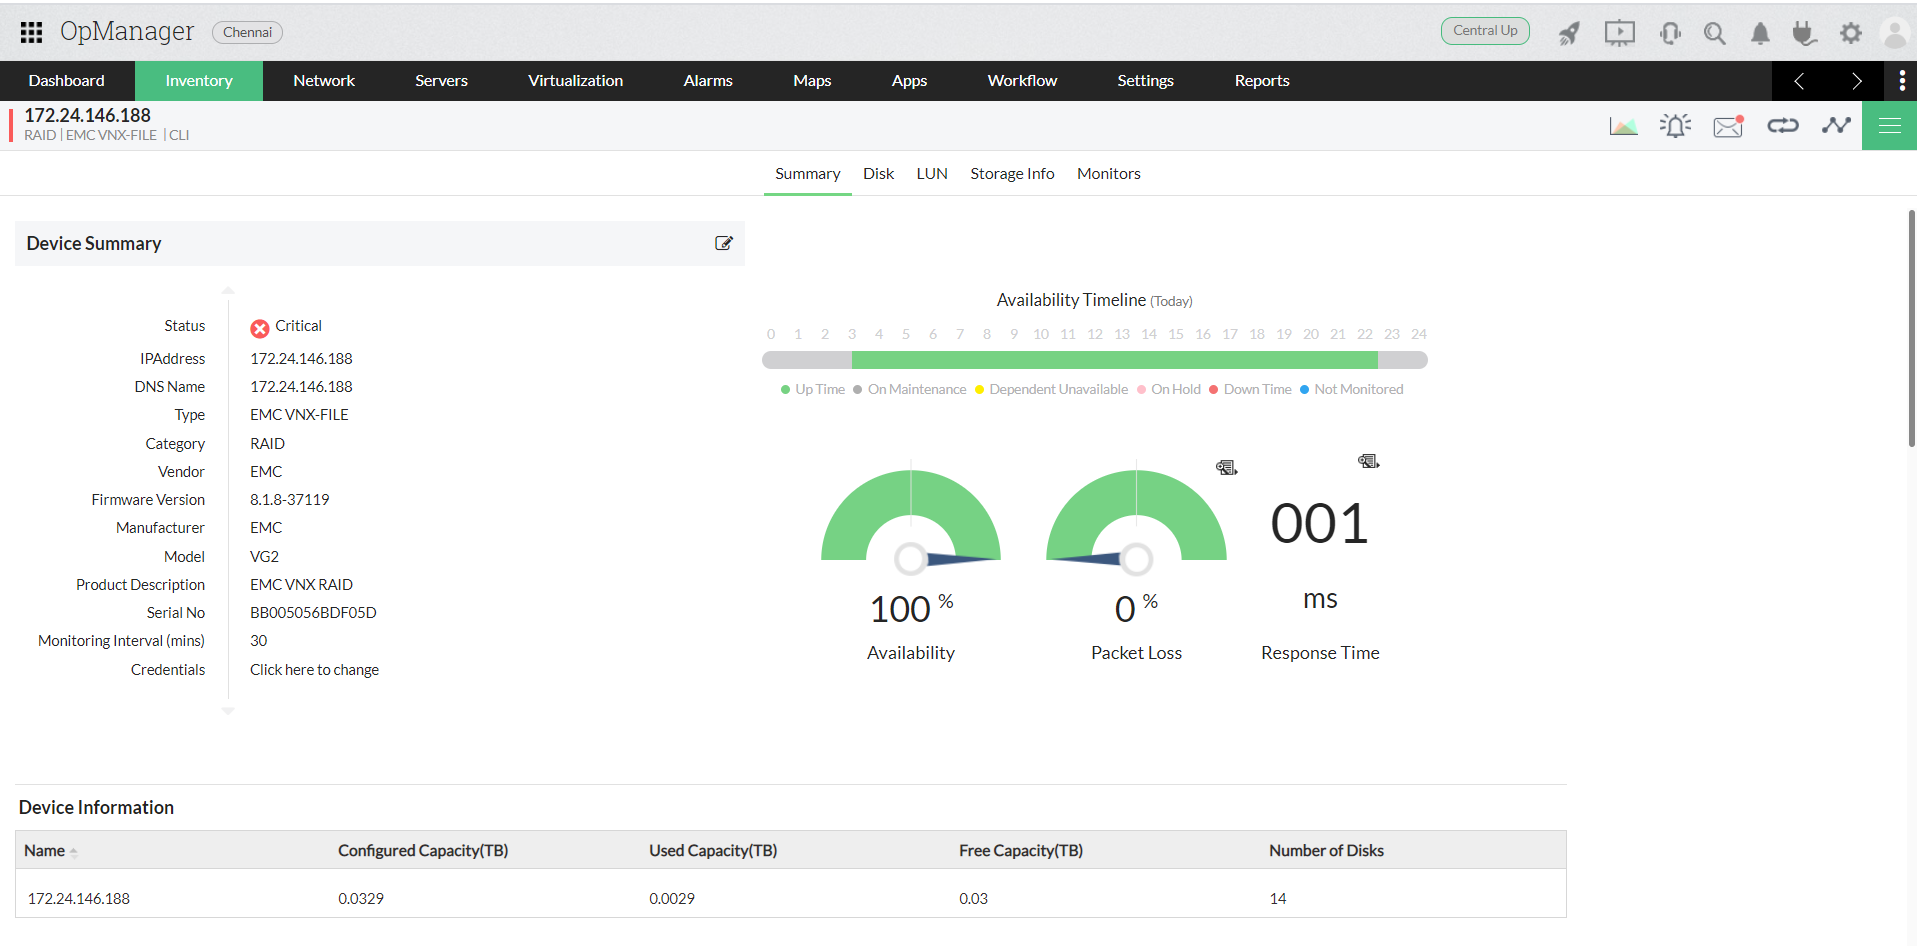 SAN Monitoring Software - ManageEngine OpManager